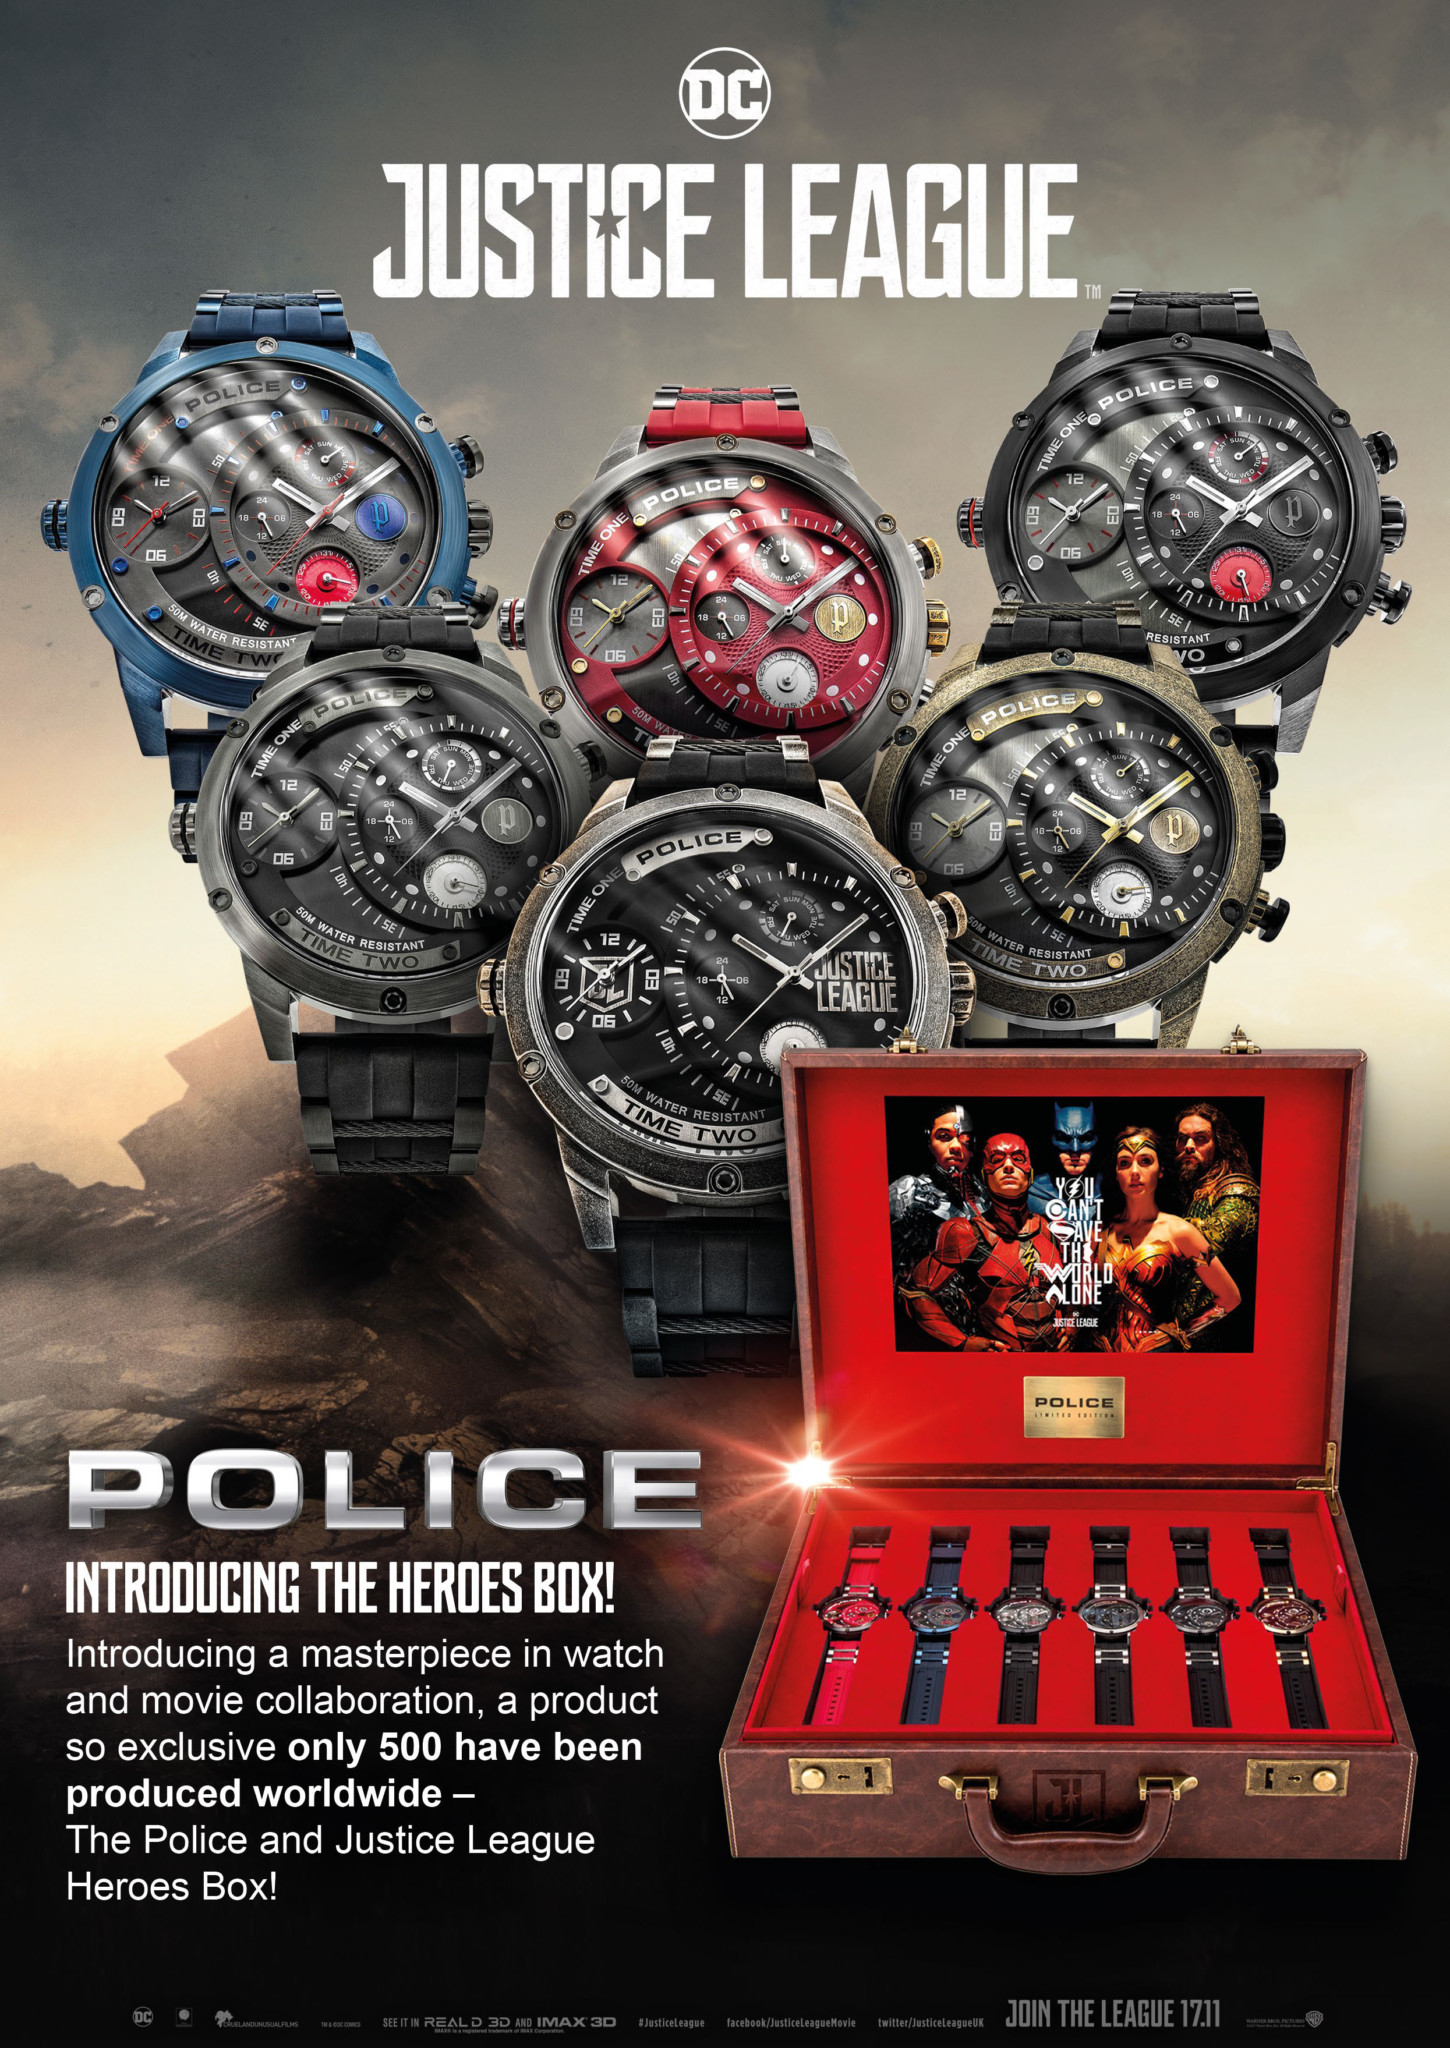 POLICE_JUSTICE_LEAGUE Heroes Box